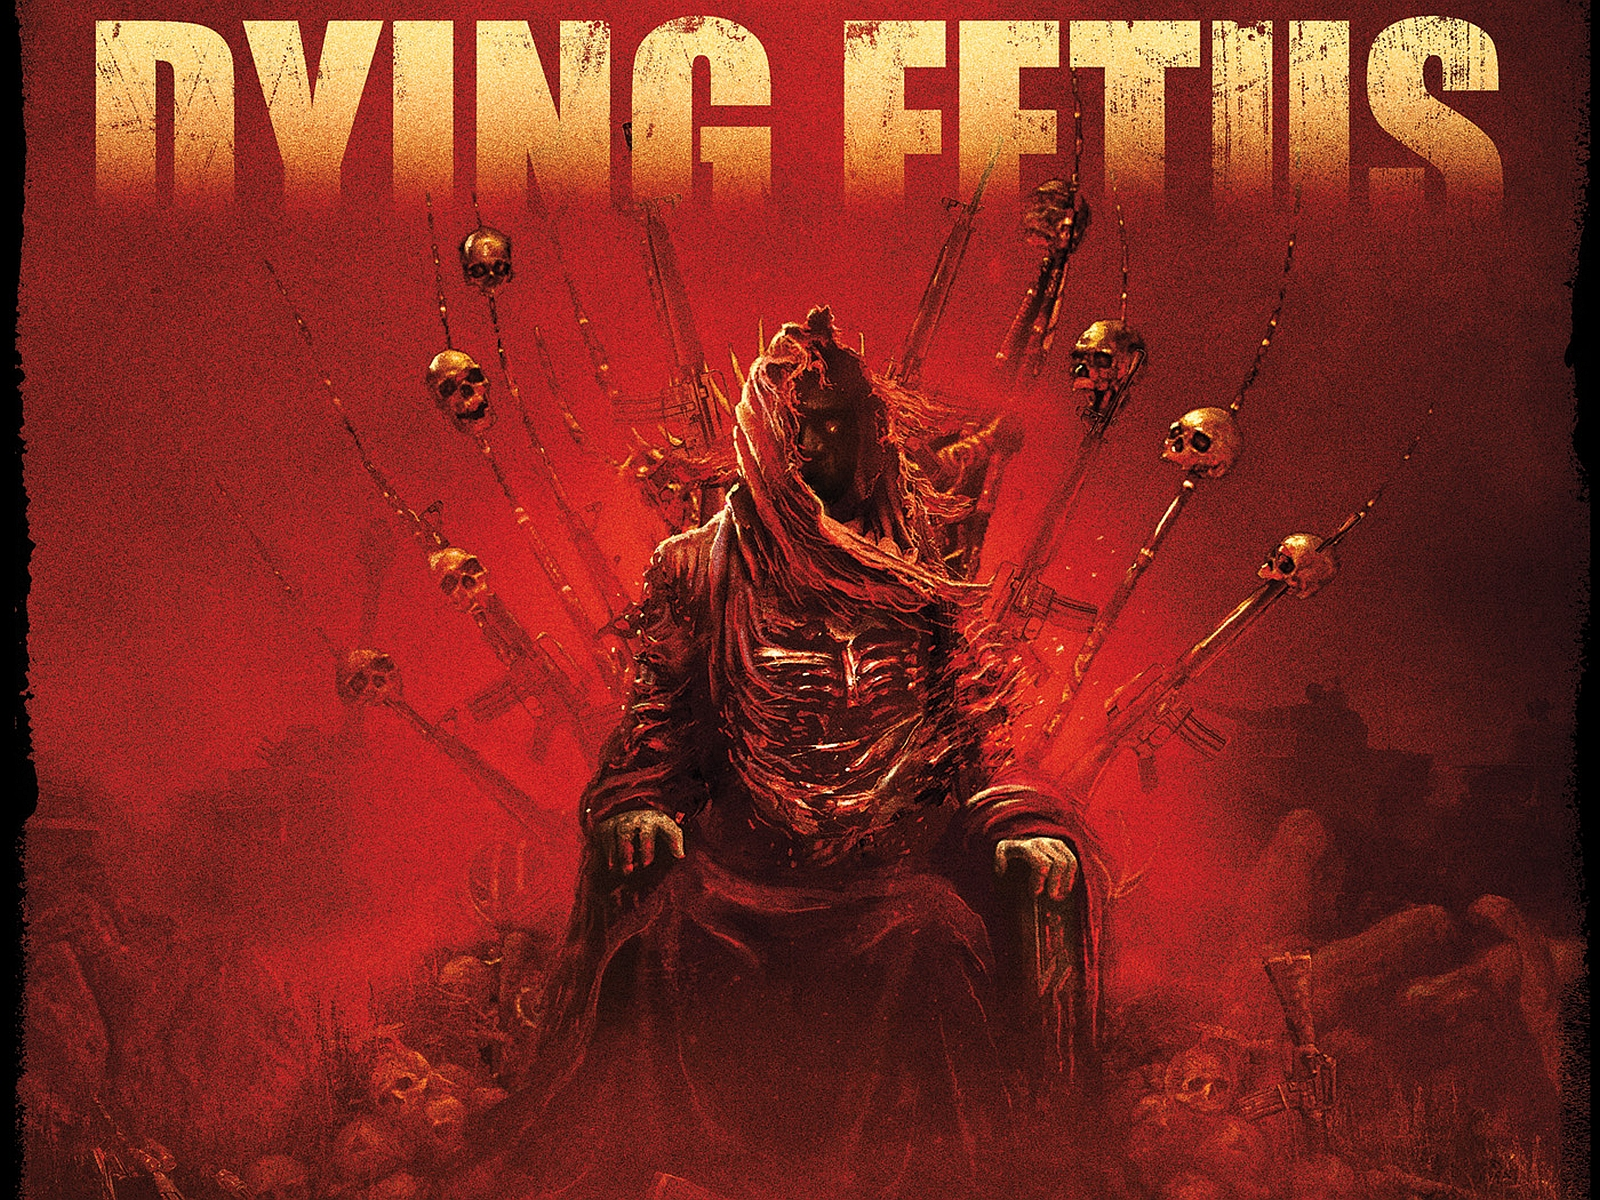 Band Wallpapers Hd 1 Dying Fetus Hd Wallpapers Backgrounds Wallpaper Abyss